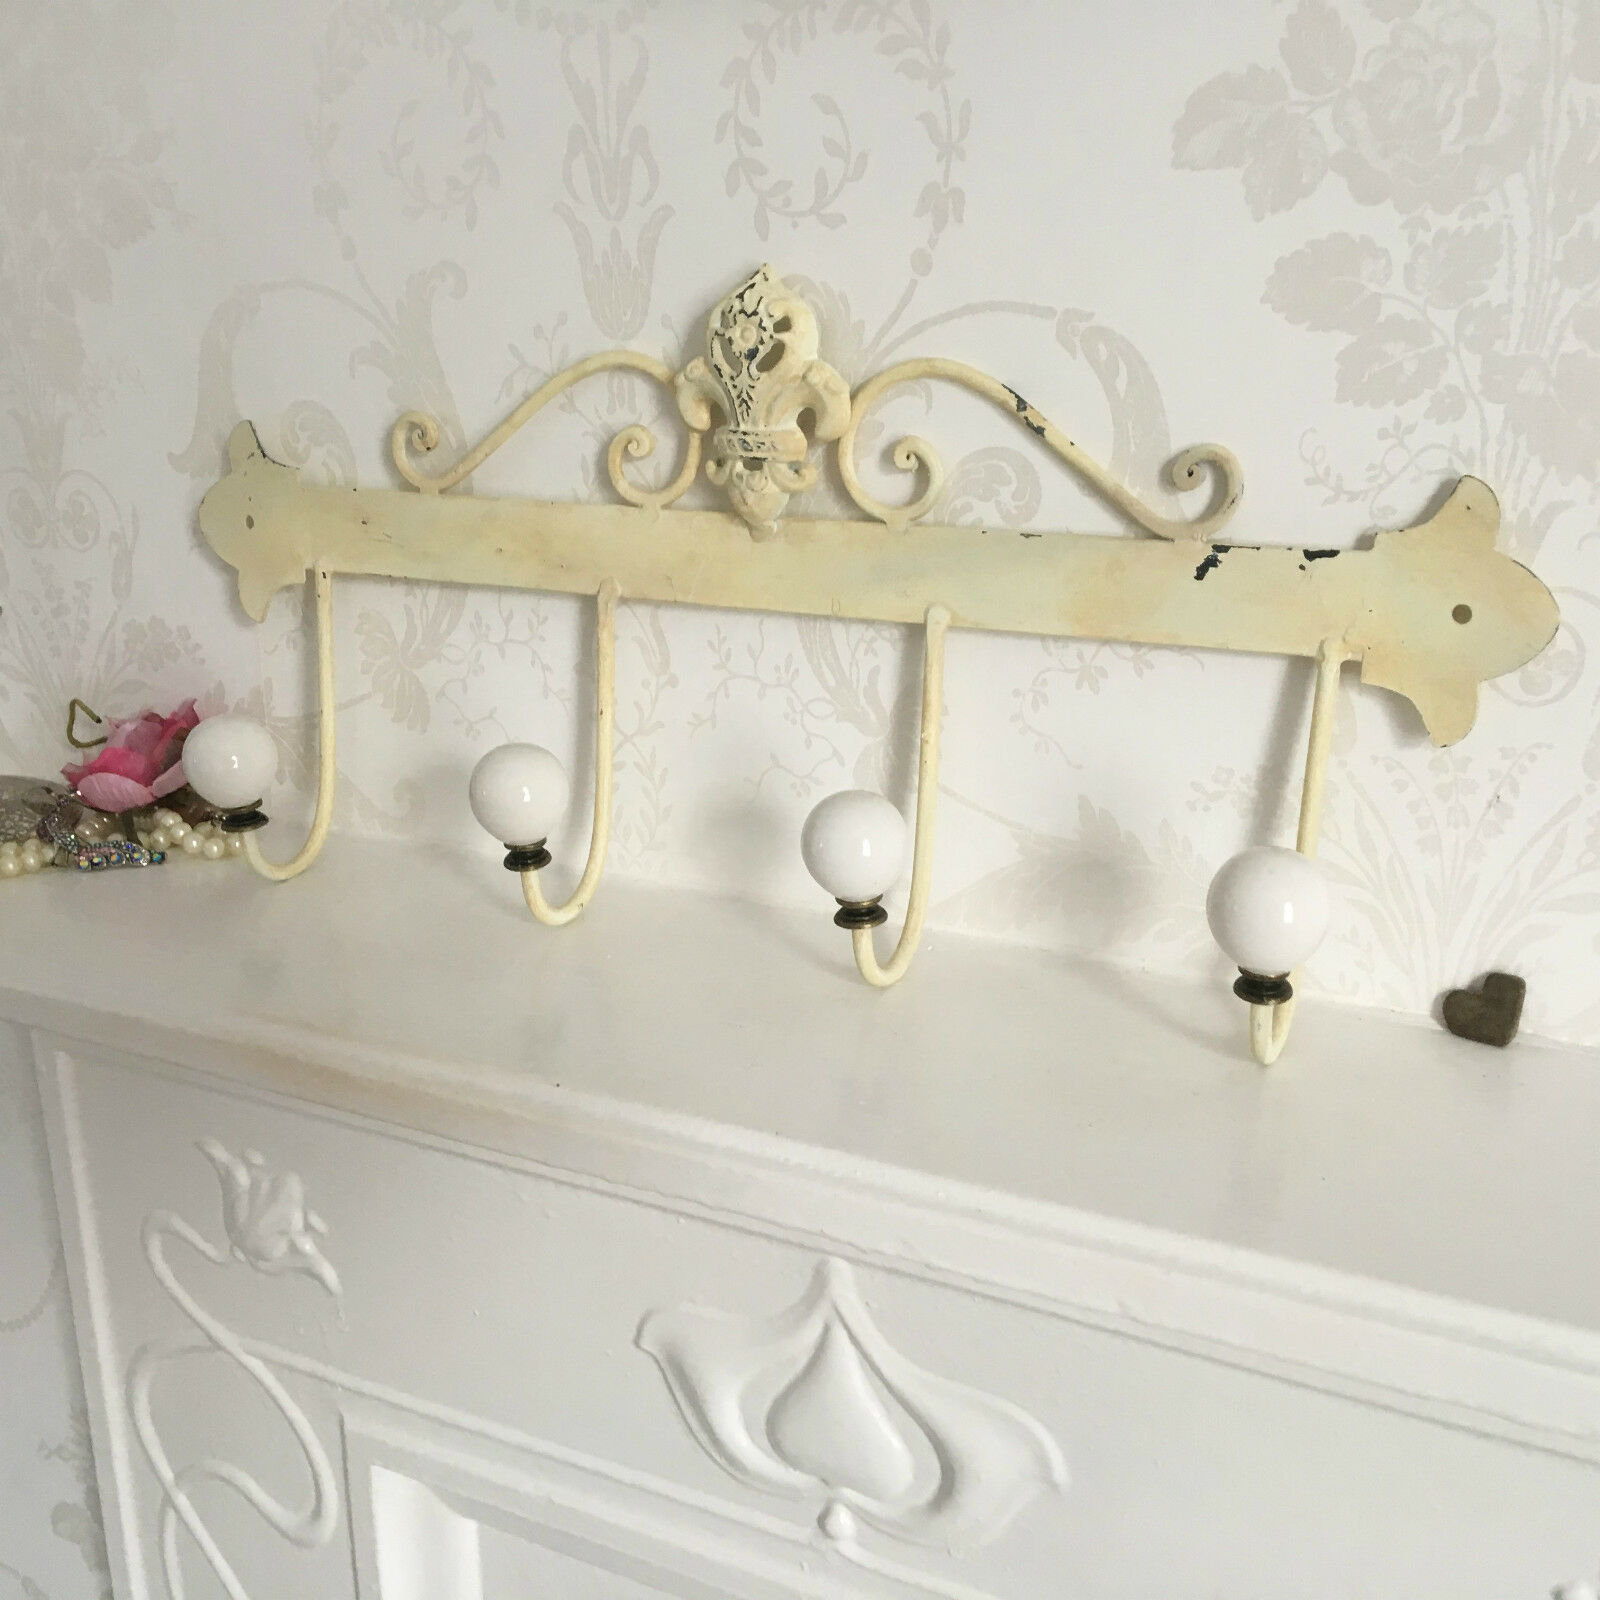 French Vintage Style 4 Ceramic Hooks Metal Coat Rack